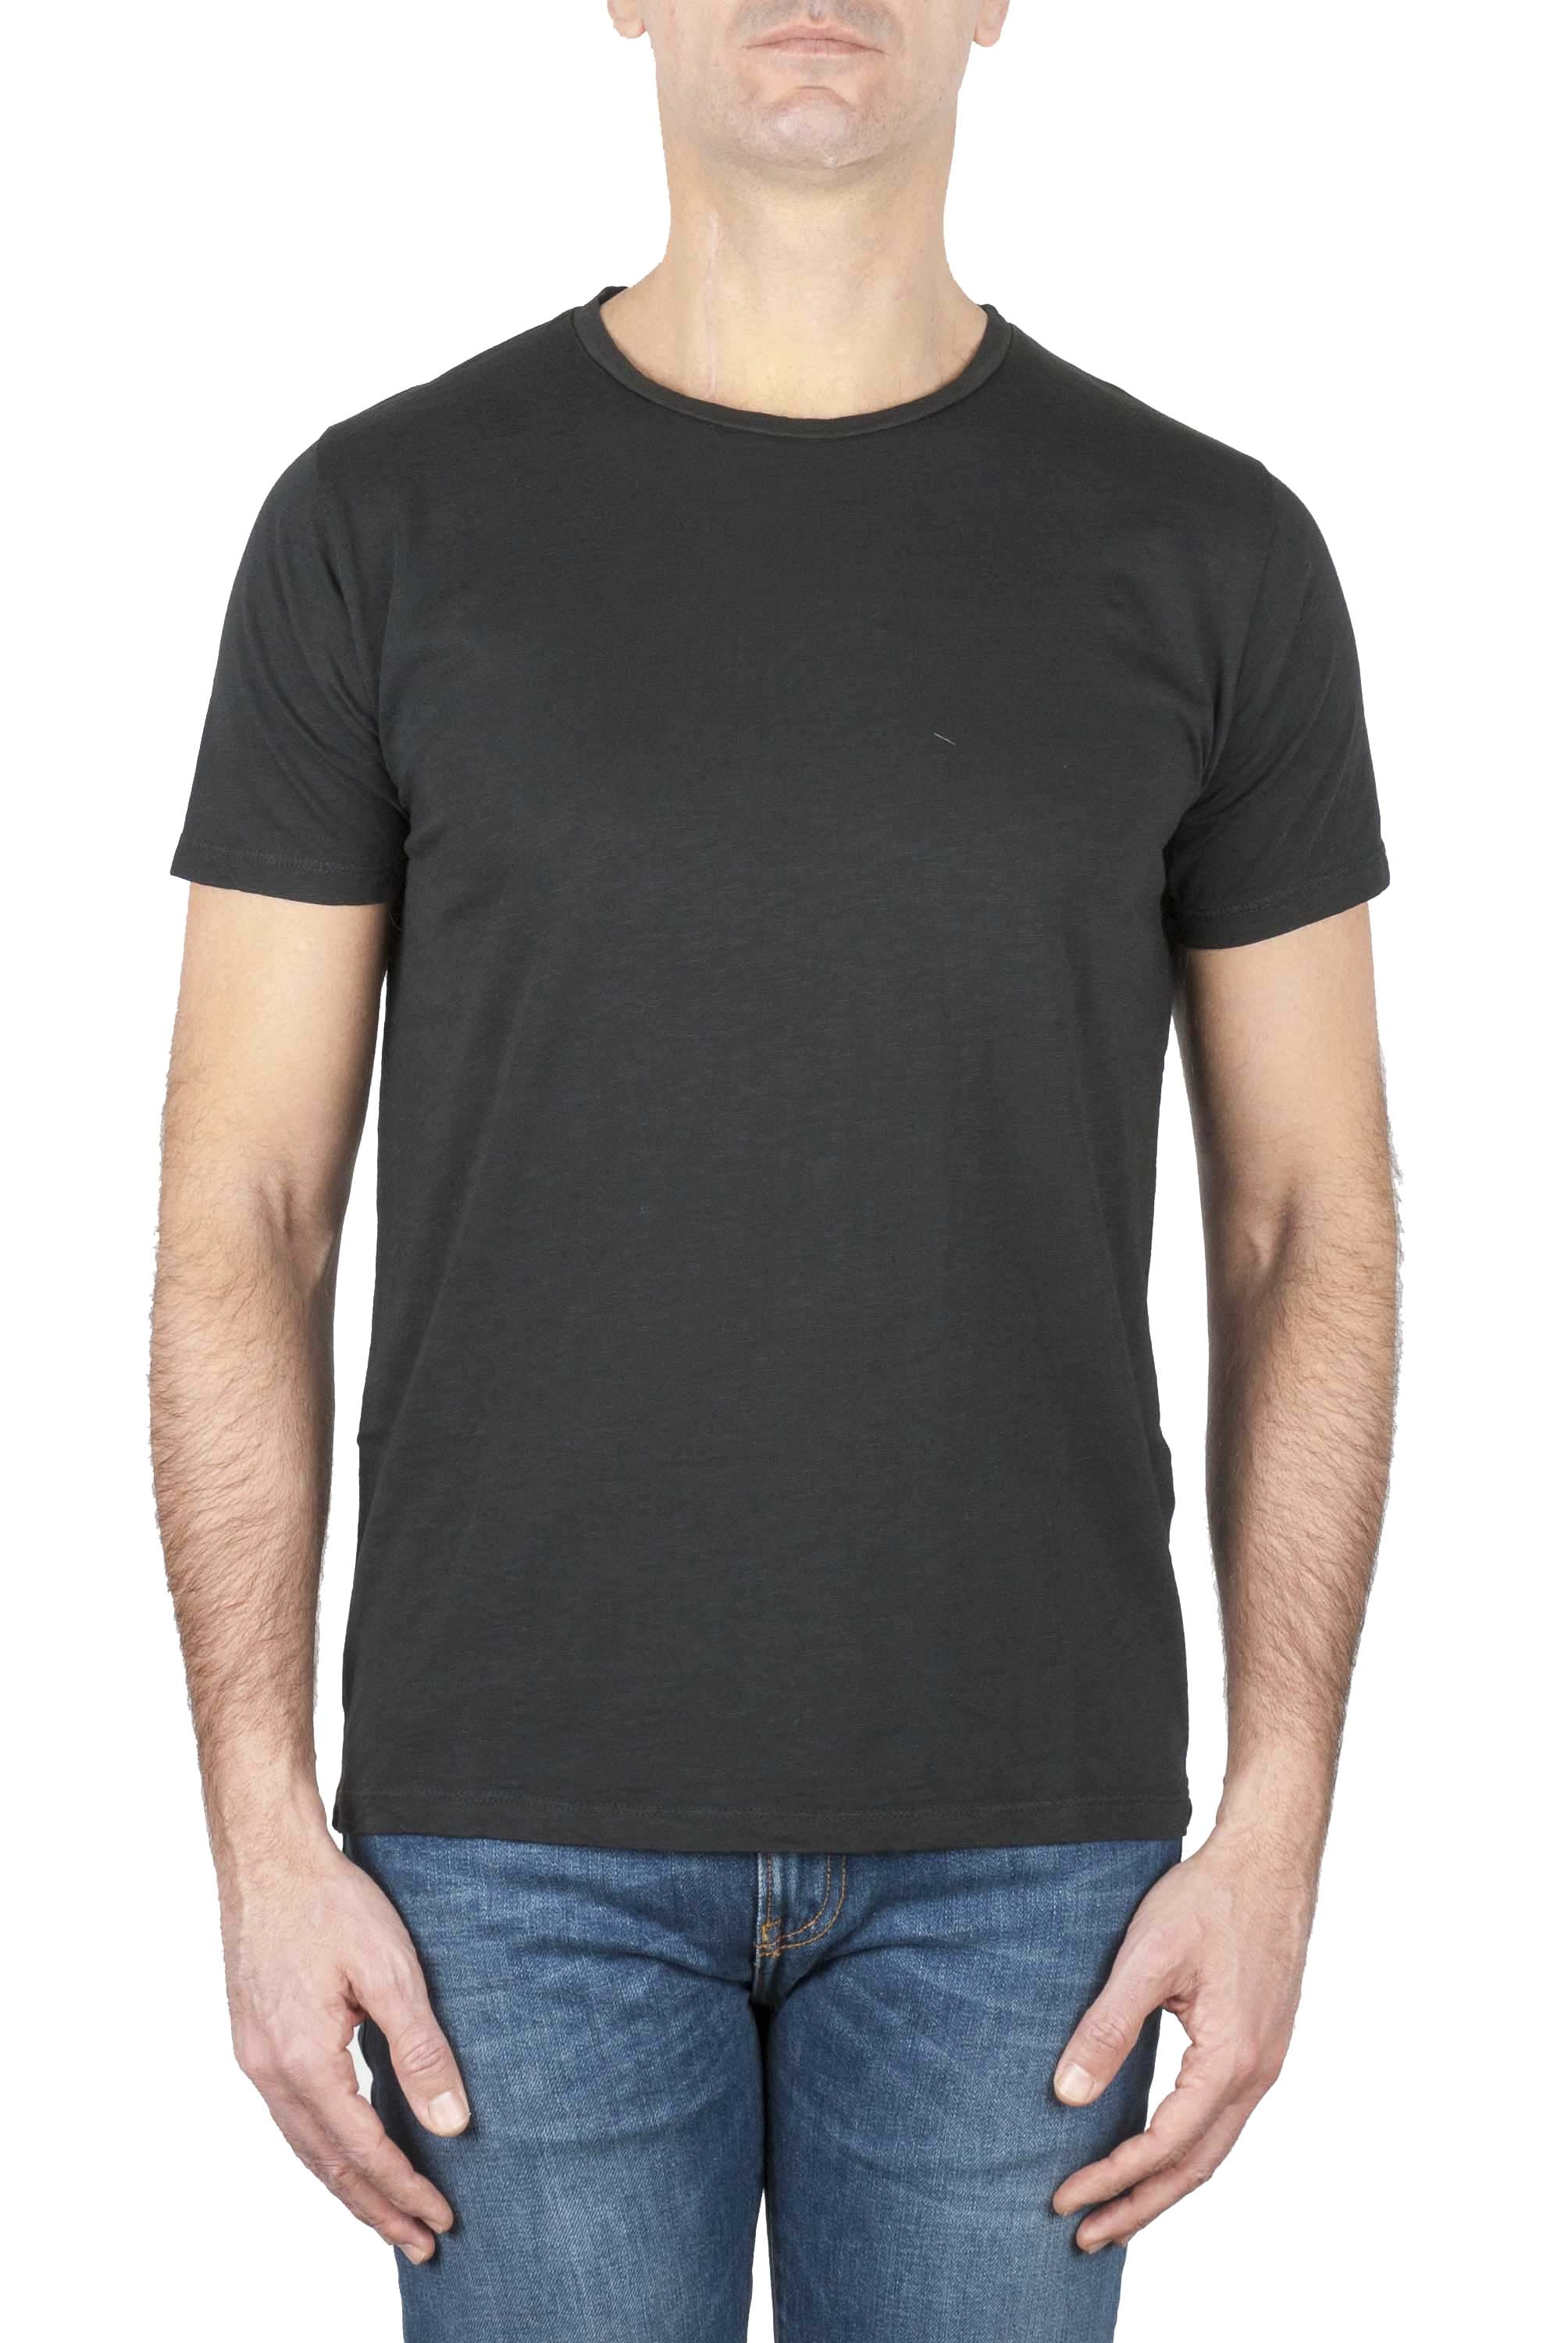 SBU 01644_19AW Flamed cotton scoop neck t-shirt black 01